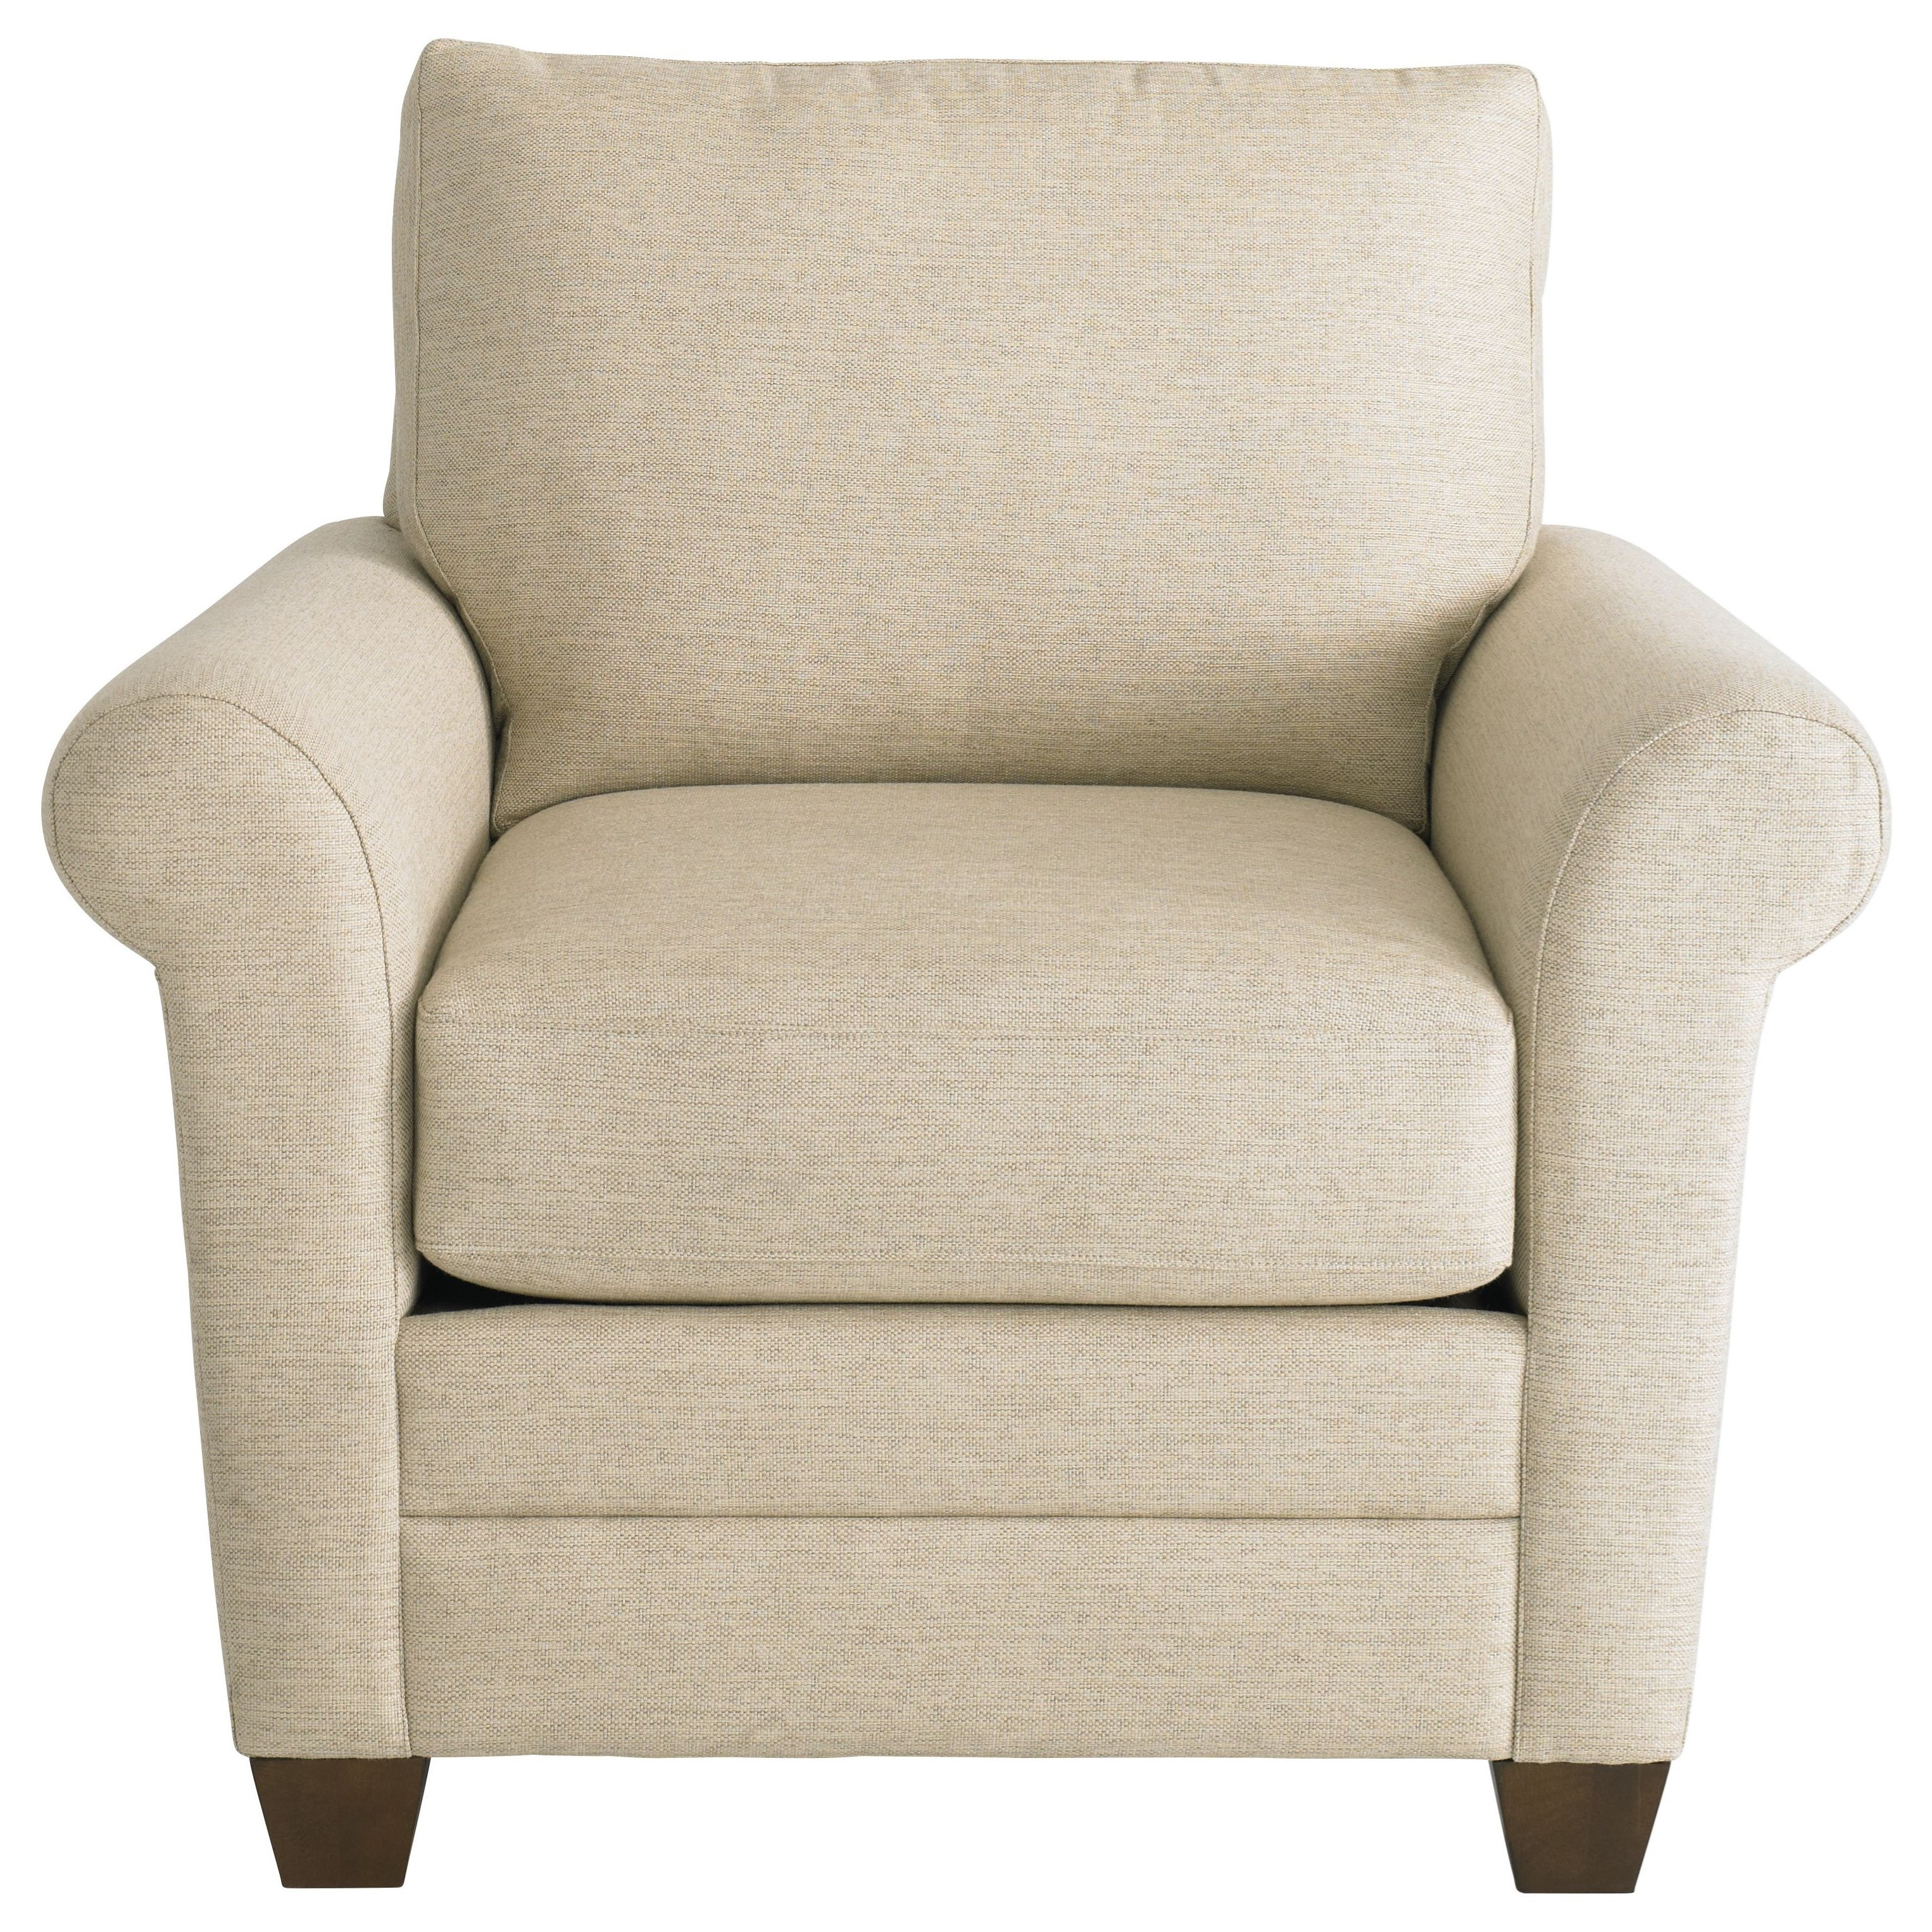 Andrew Chair by Bassett at Fisher Home Furnishings